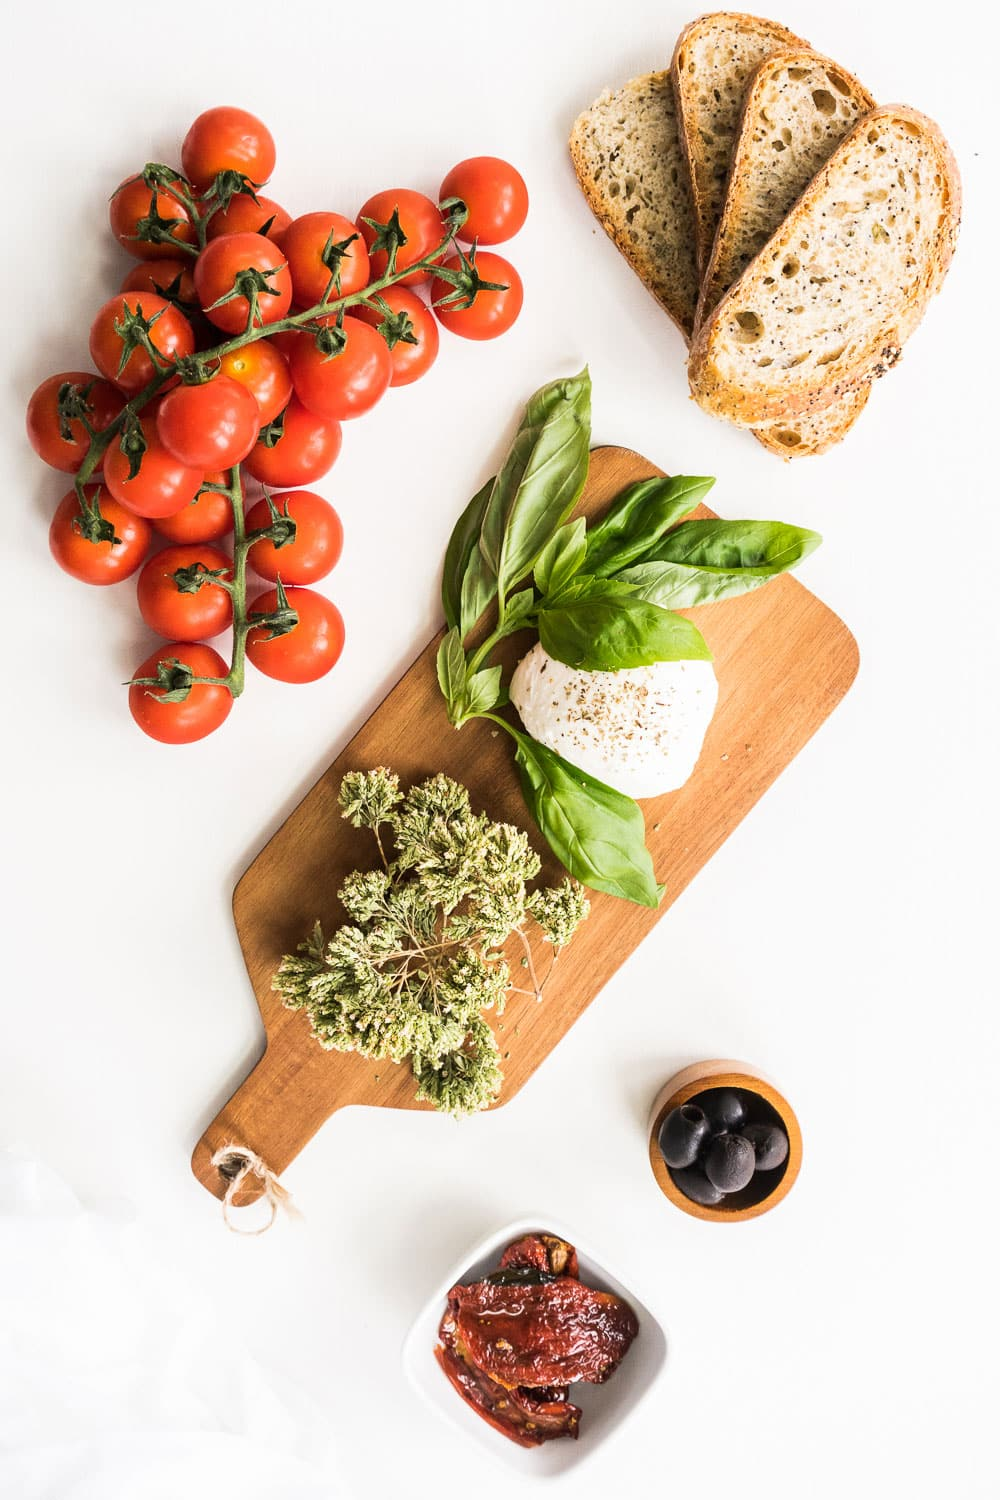 All the ingredients for the perfect bruschetta! Grilled smoky bread, delicious sun-ripened tomatoes, sun-dried tomatoes, extra virgin olive oil, delicious mozzarella and black olives make this the ultimate appetizer for your summer parties!